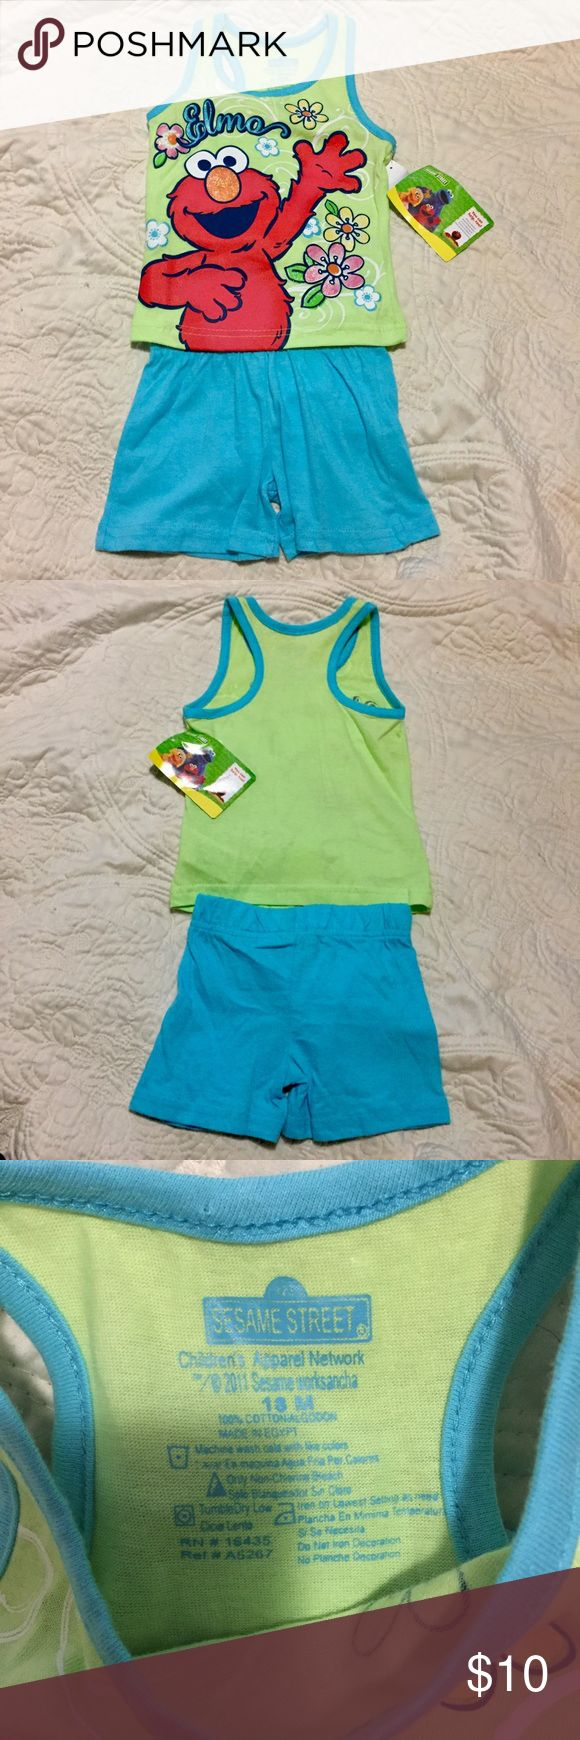 NWT Elmo Sesame Street Outfit SZ 18 MO This Elmo Sesame Street outfit includes the tank top and shorts and is brand new with tags attached. Size 18 months. Sesame Street Matching Sets